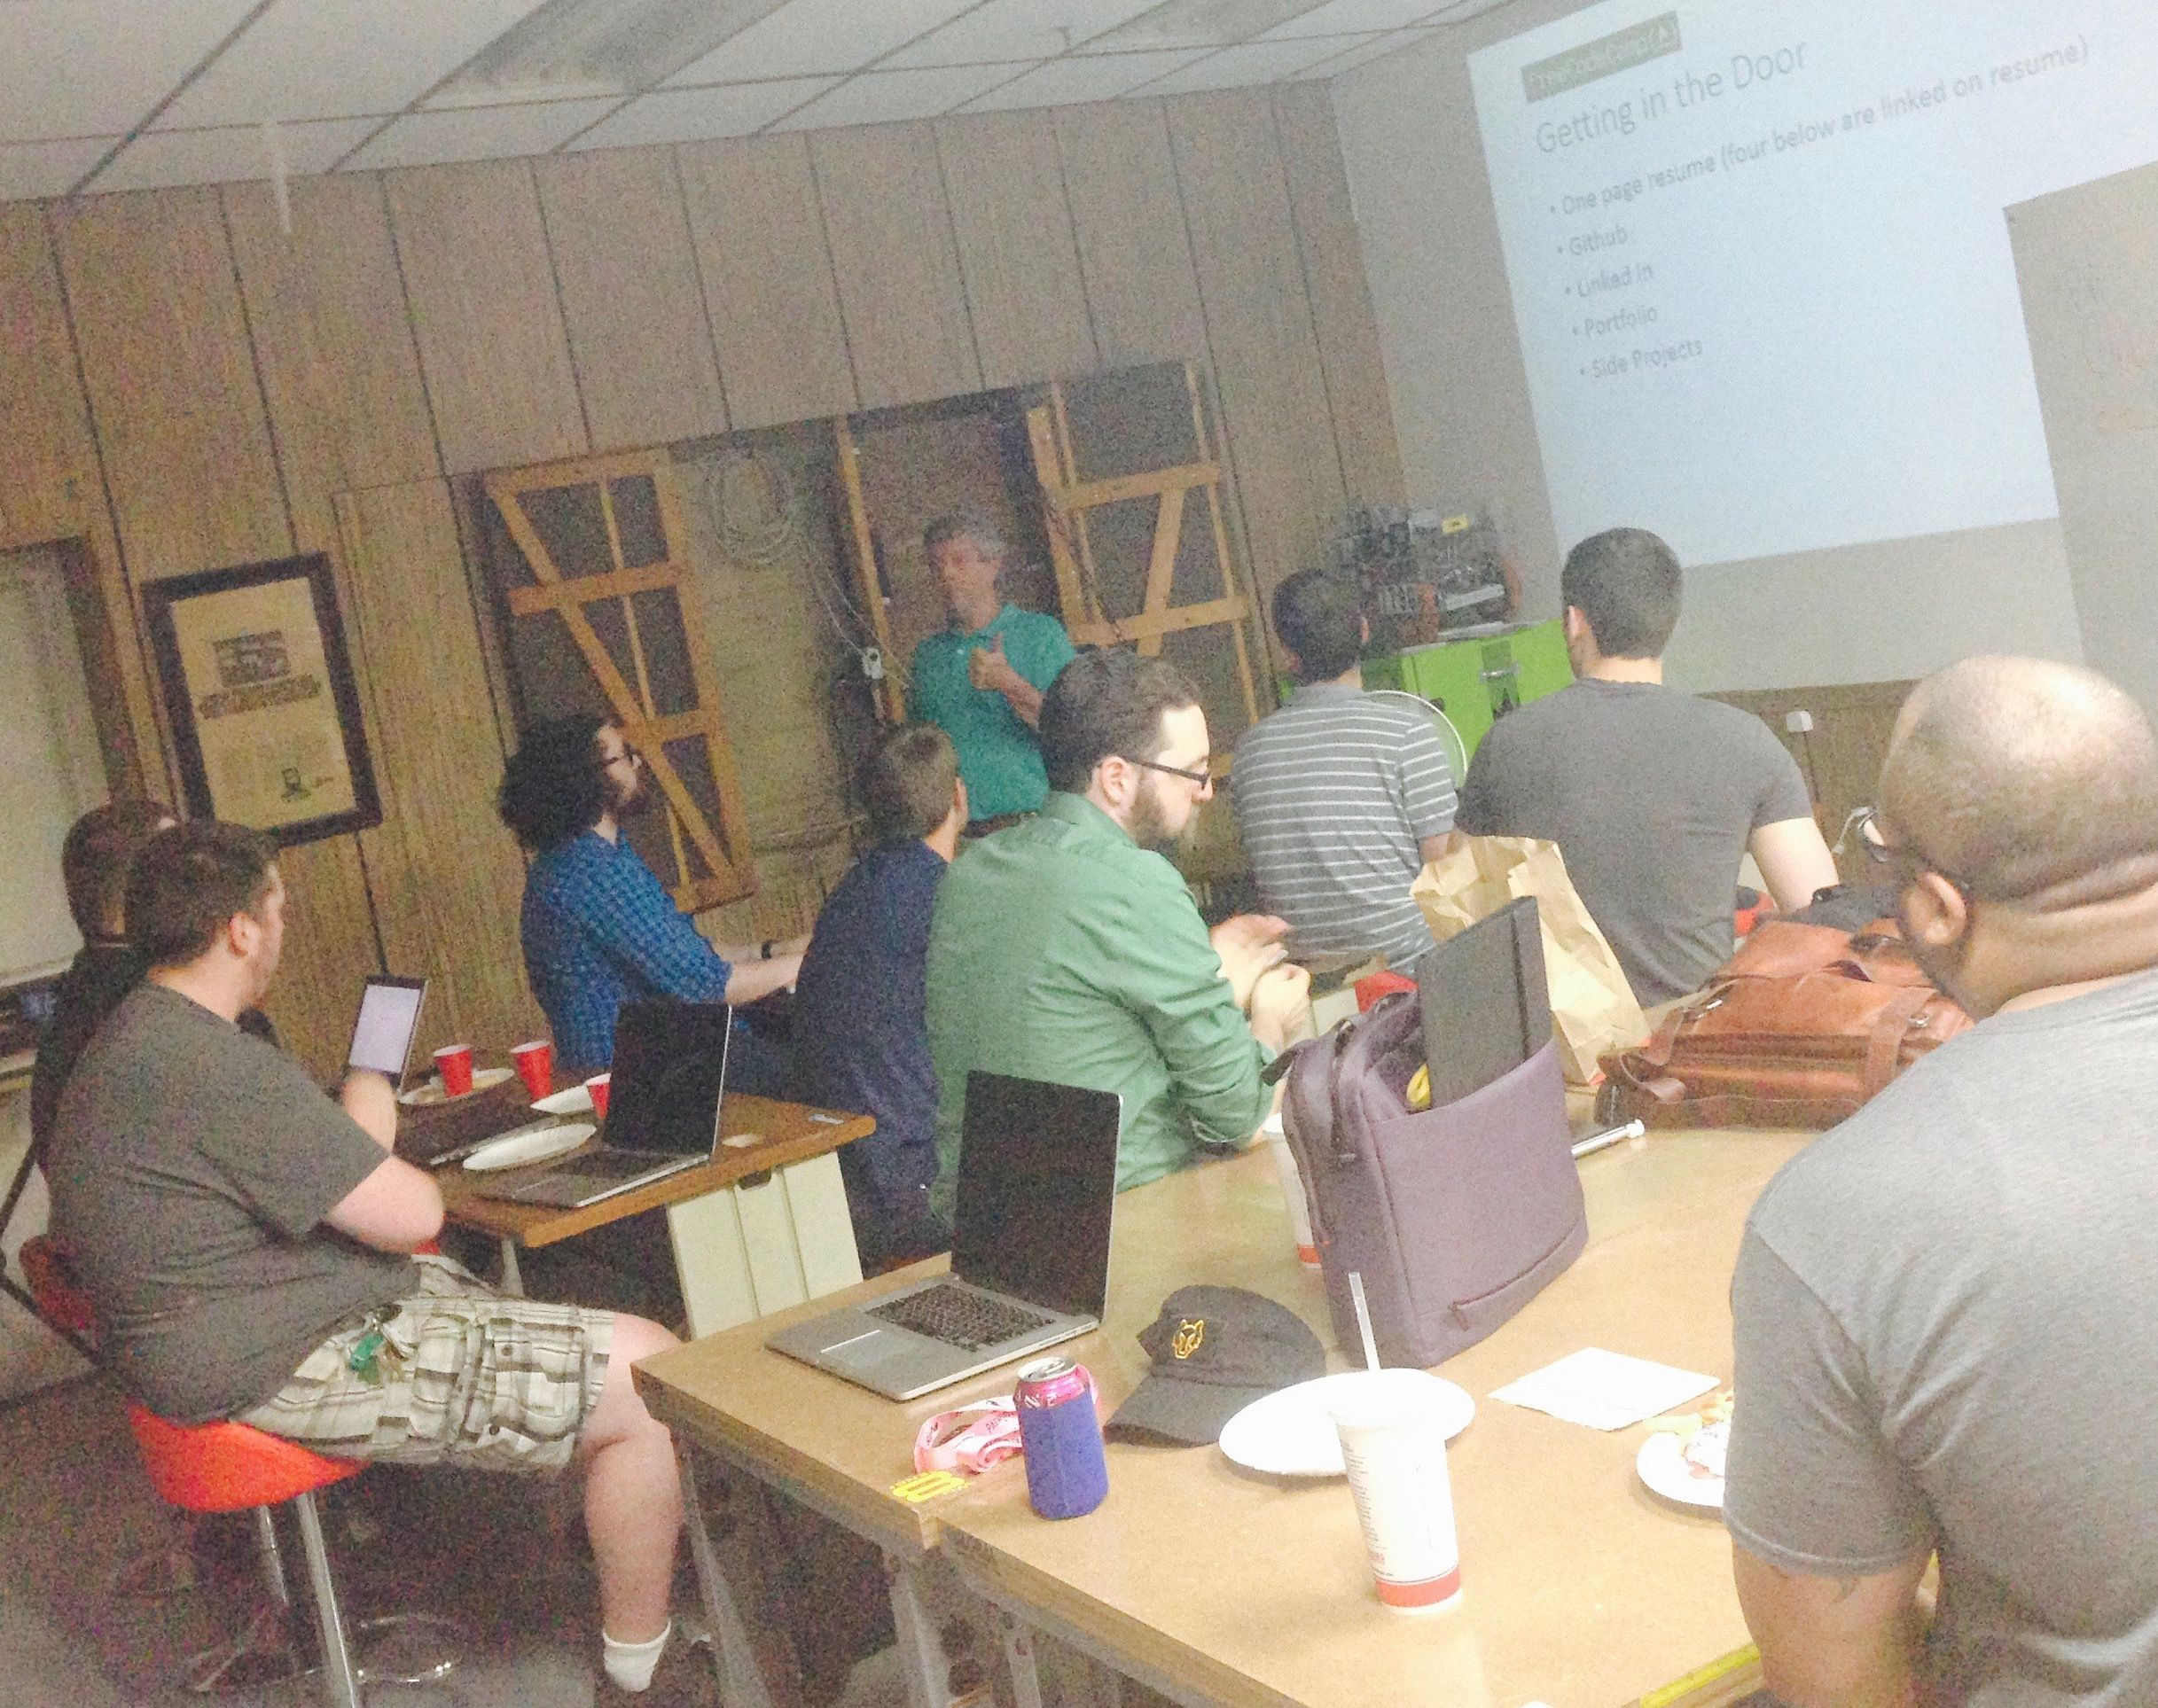 Free Code Camp Indy